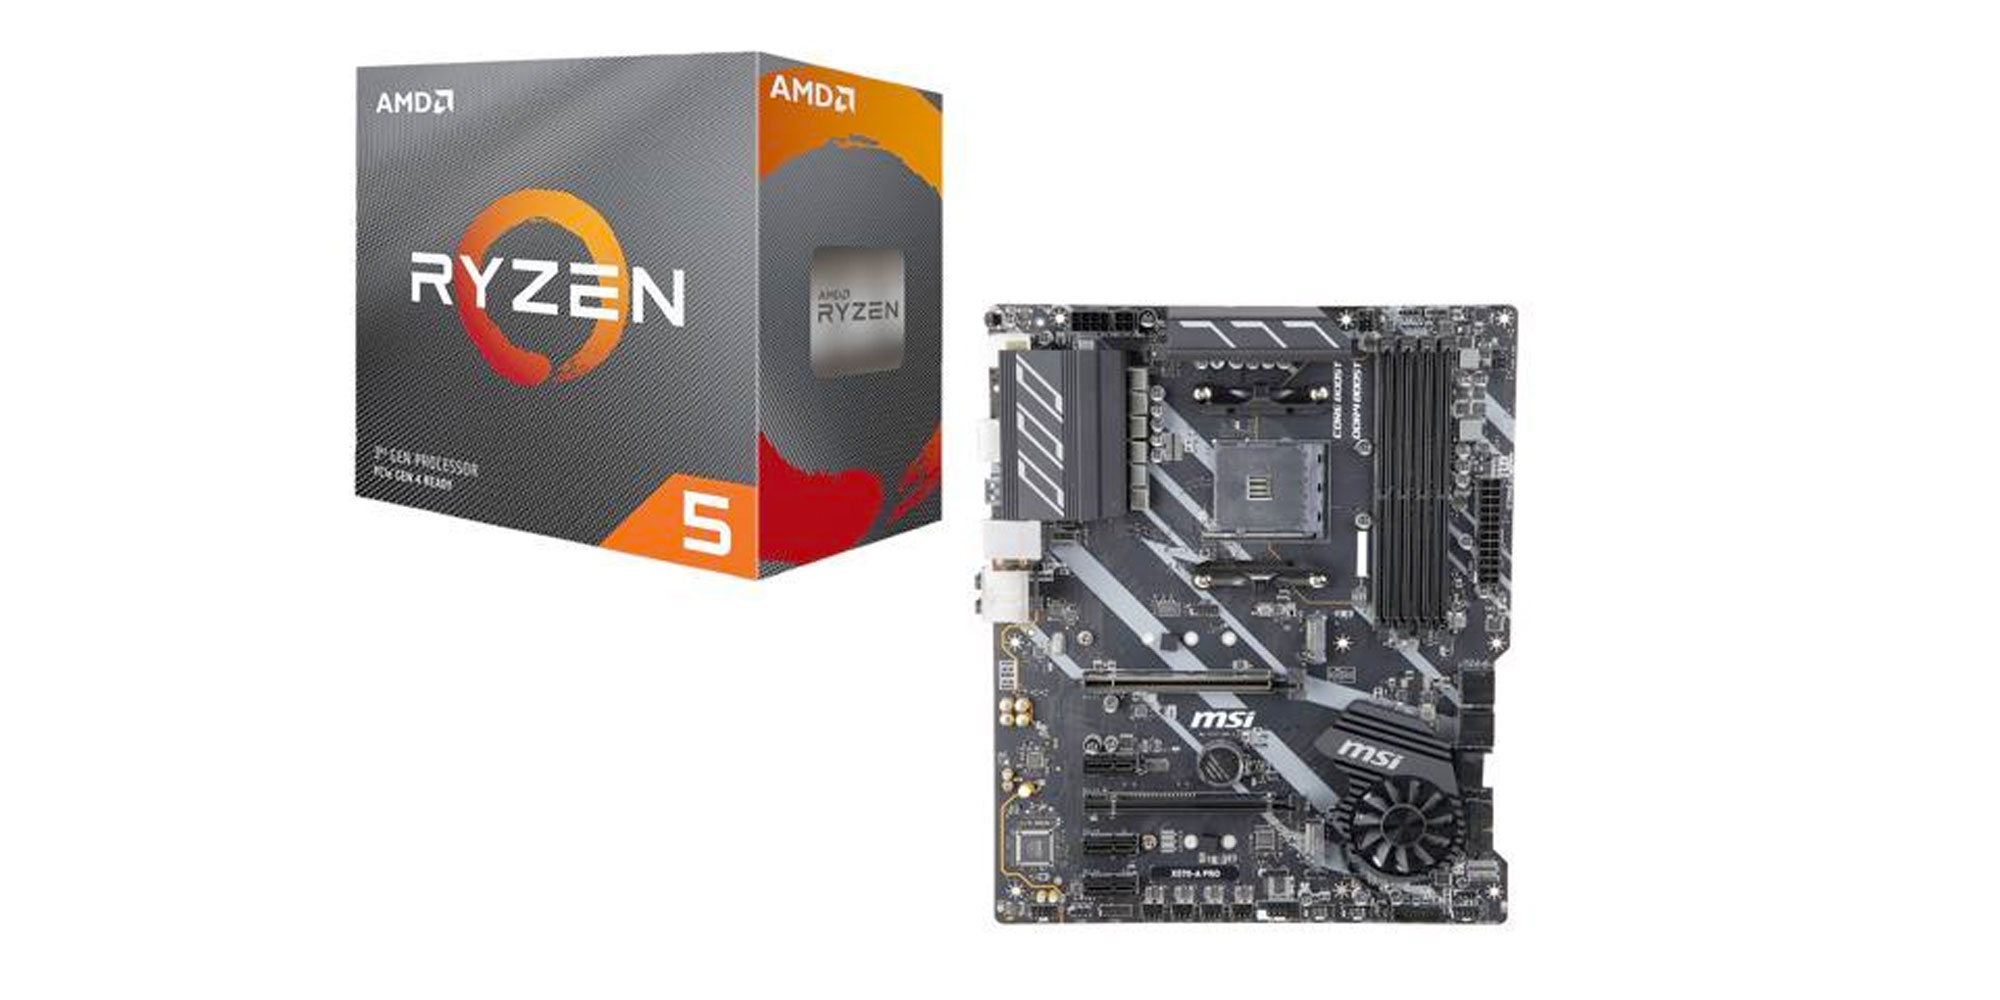 Build A Pc With Amd Ryzen 5 Msi X570 Motherboard At 290 9to5toys